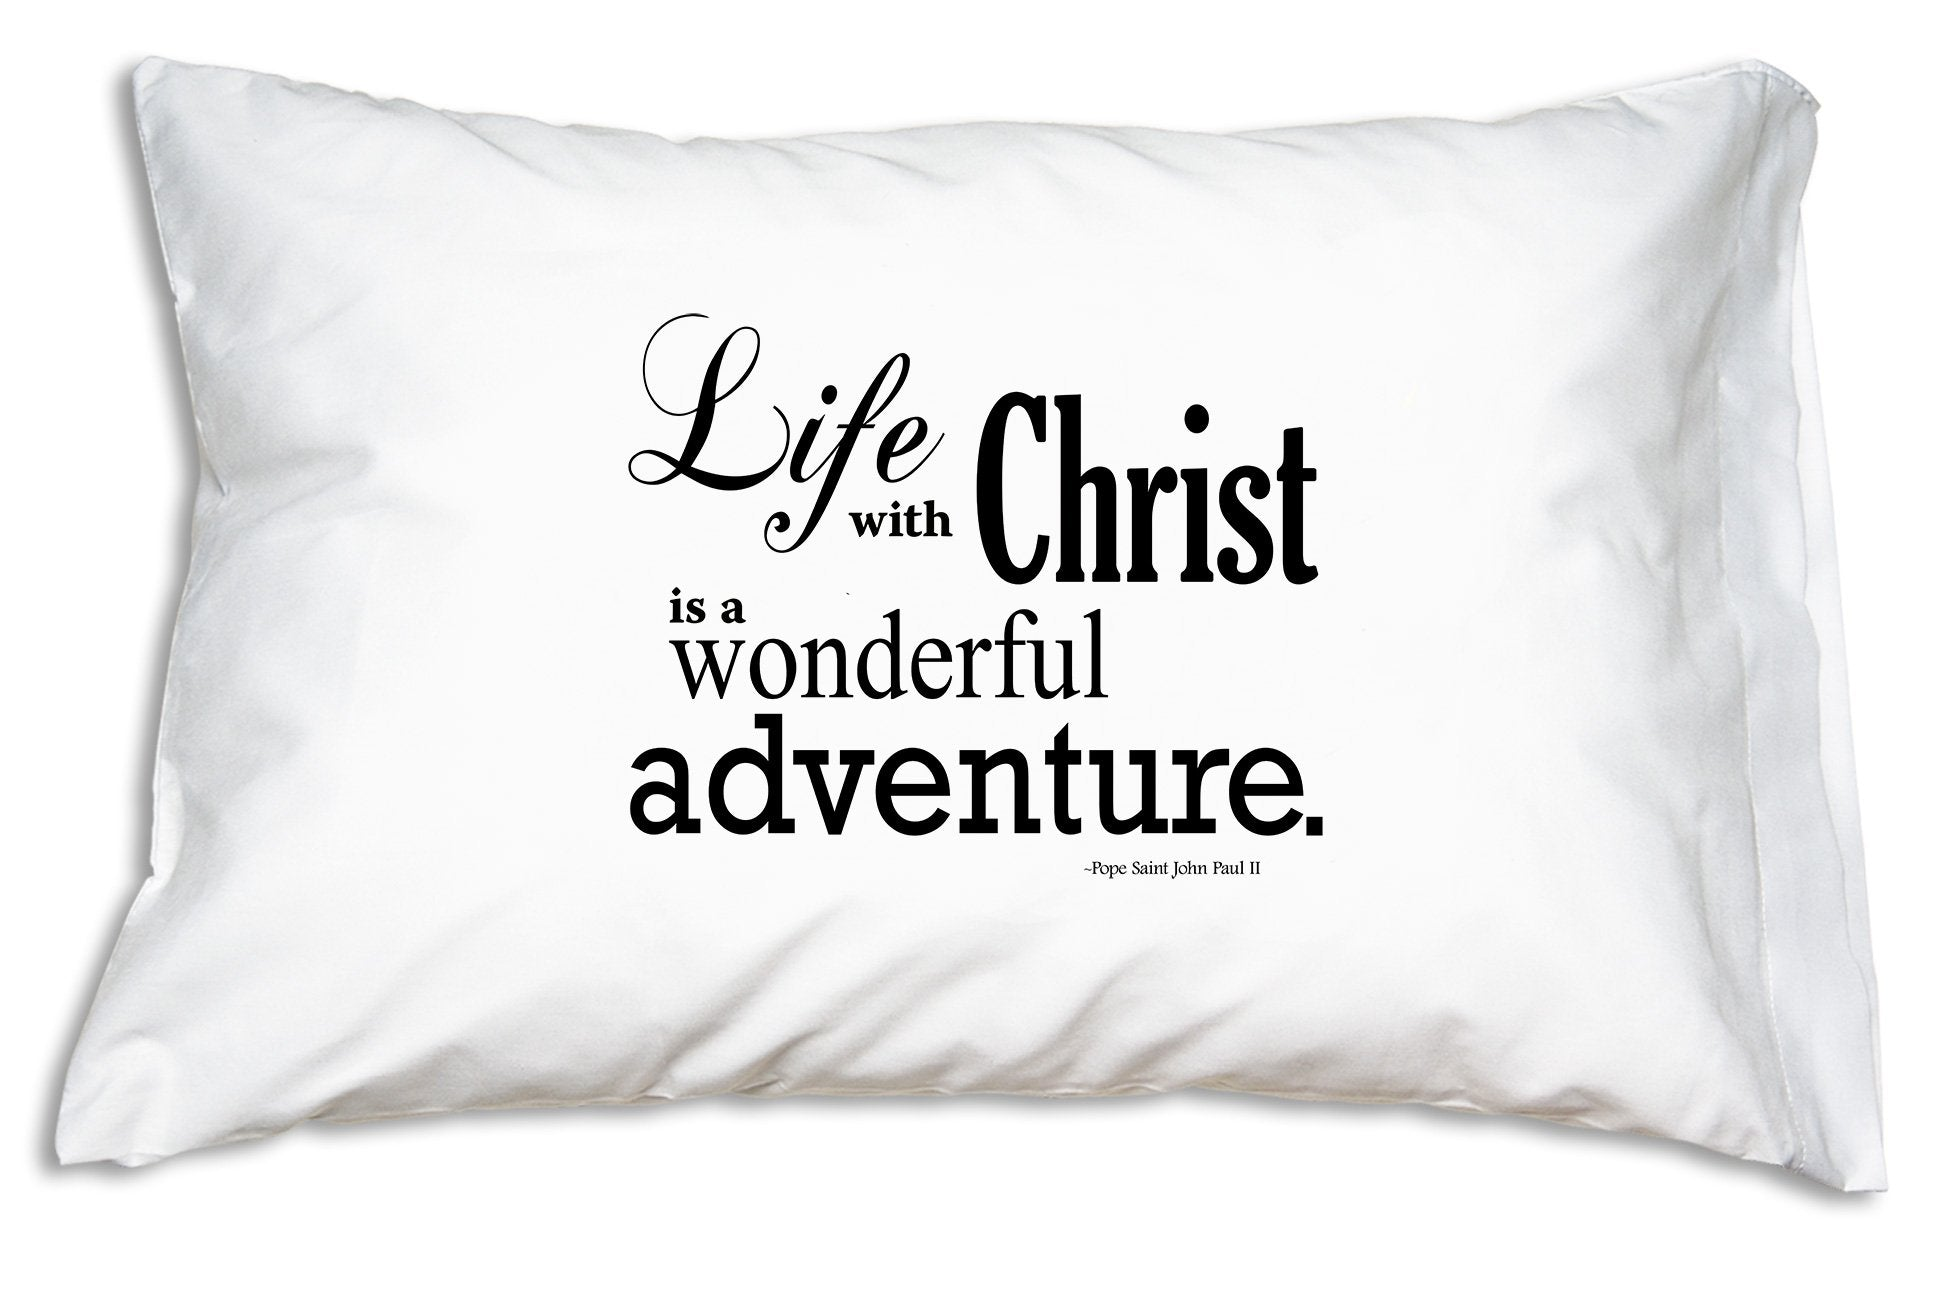 Prayer Pillowcase - Life with Christ